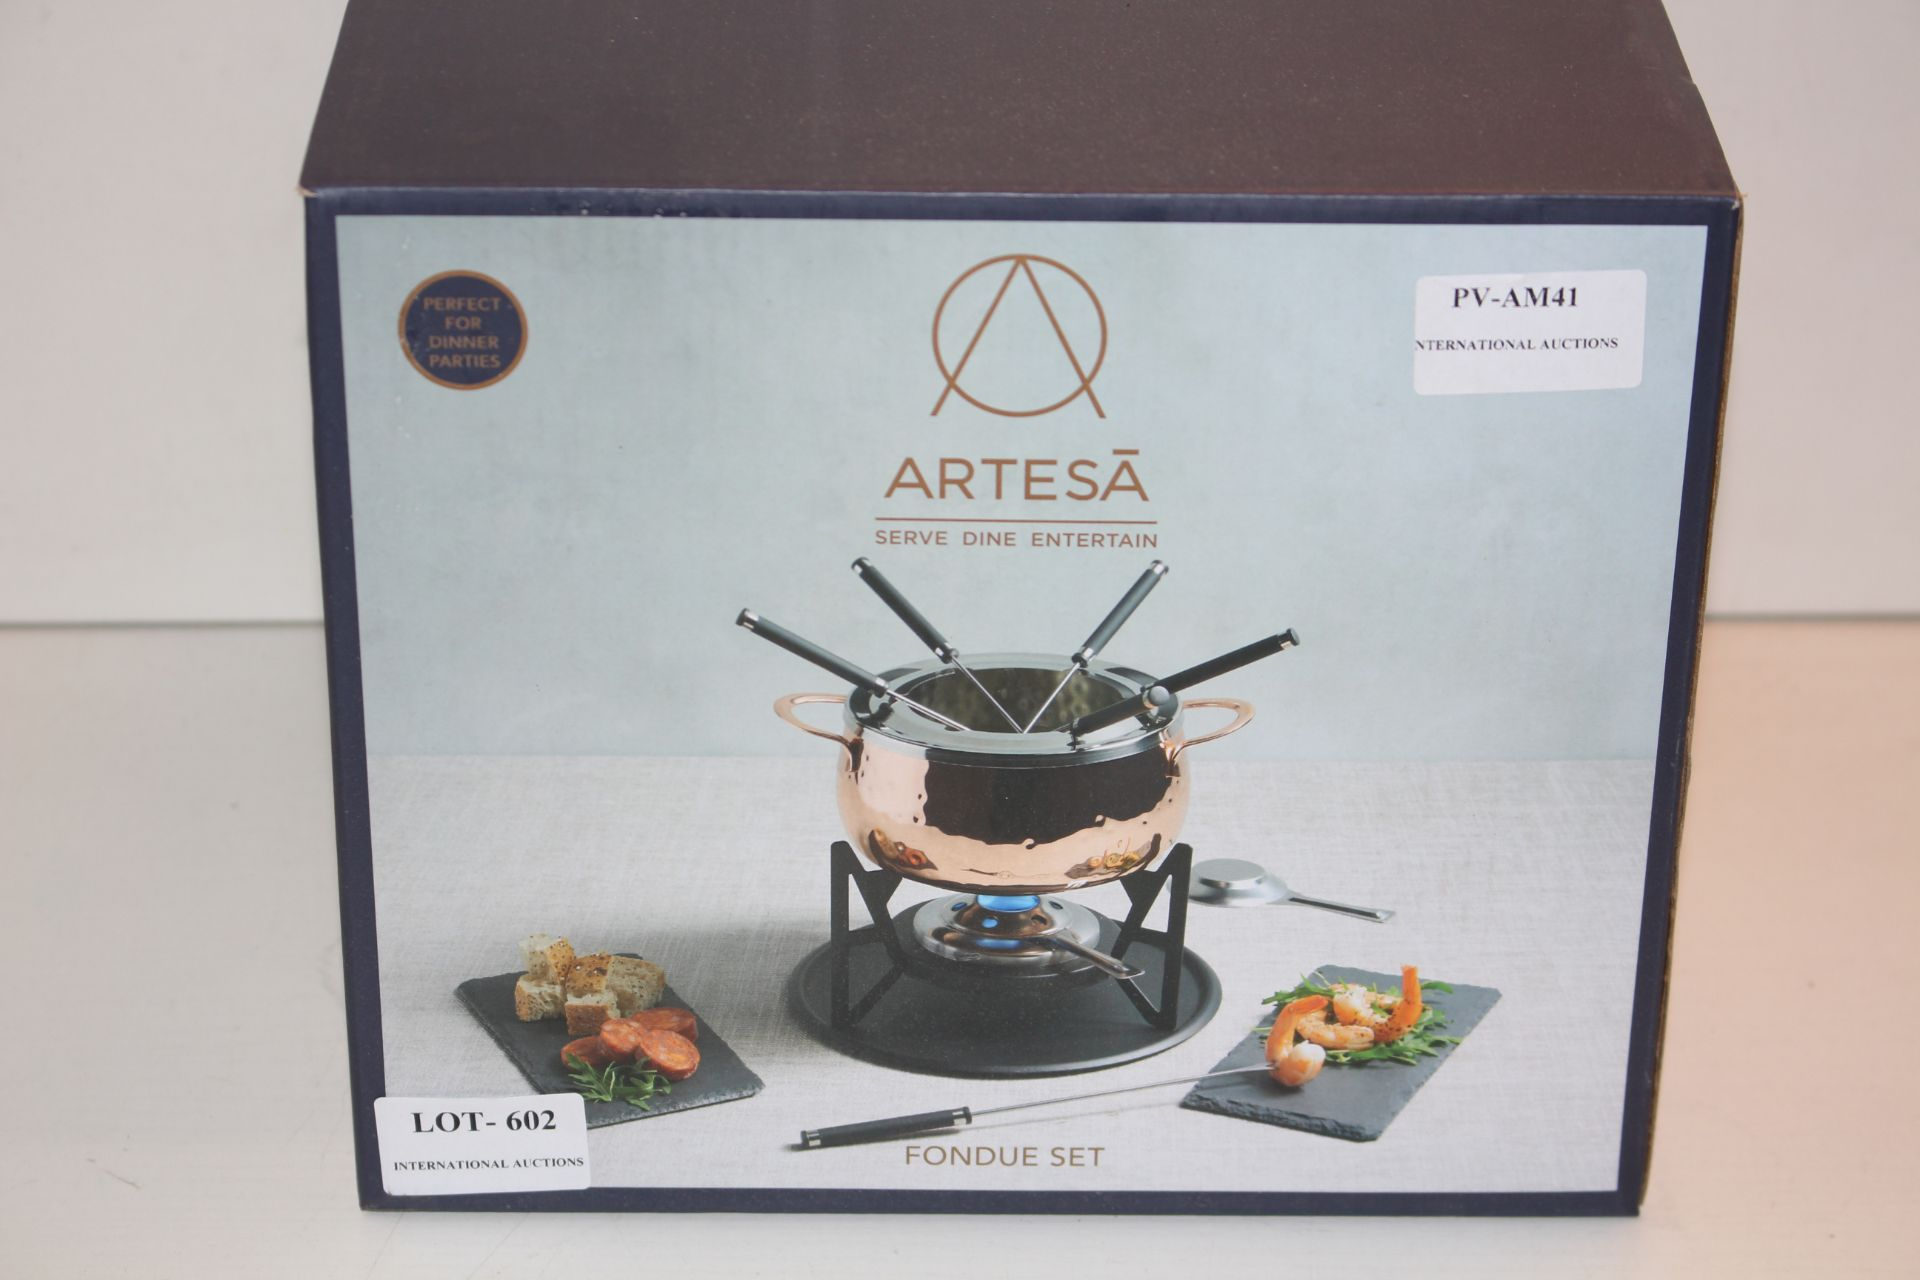 BOXED ARTESA FONDUE SETCondition ReportAppraisal Available on Request- All Items are Unchecked/